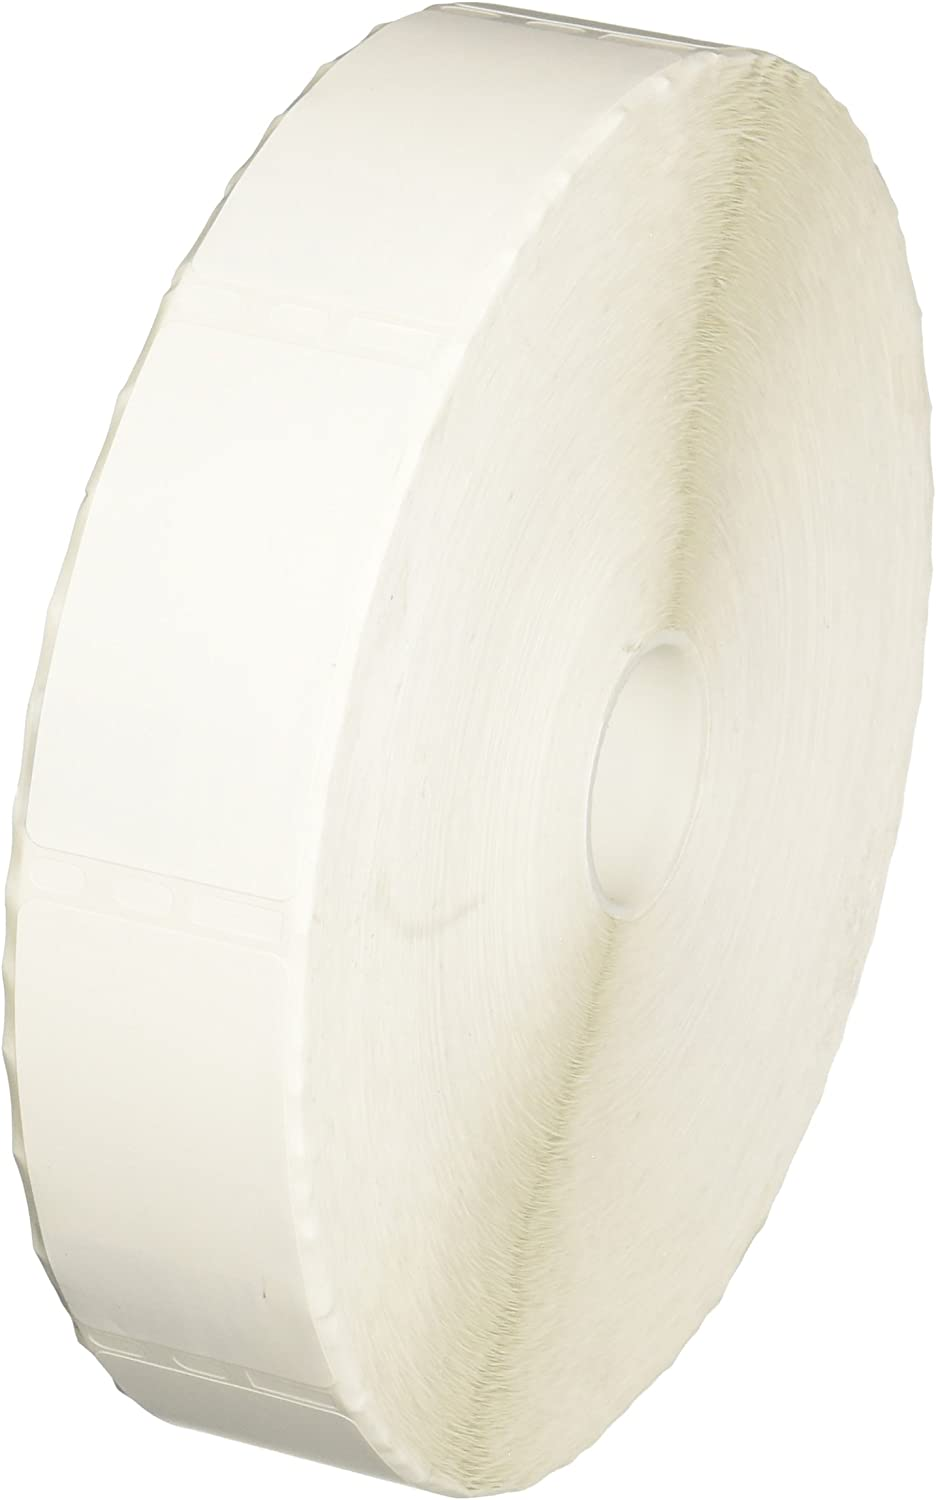 Large Capacity 1700 Label Roll of Multi Purpose Labels 1 1//8INX2IN